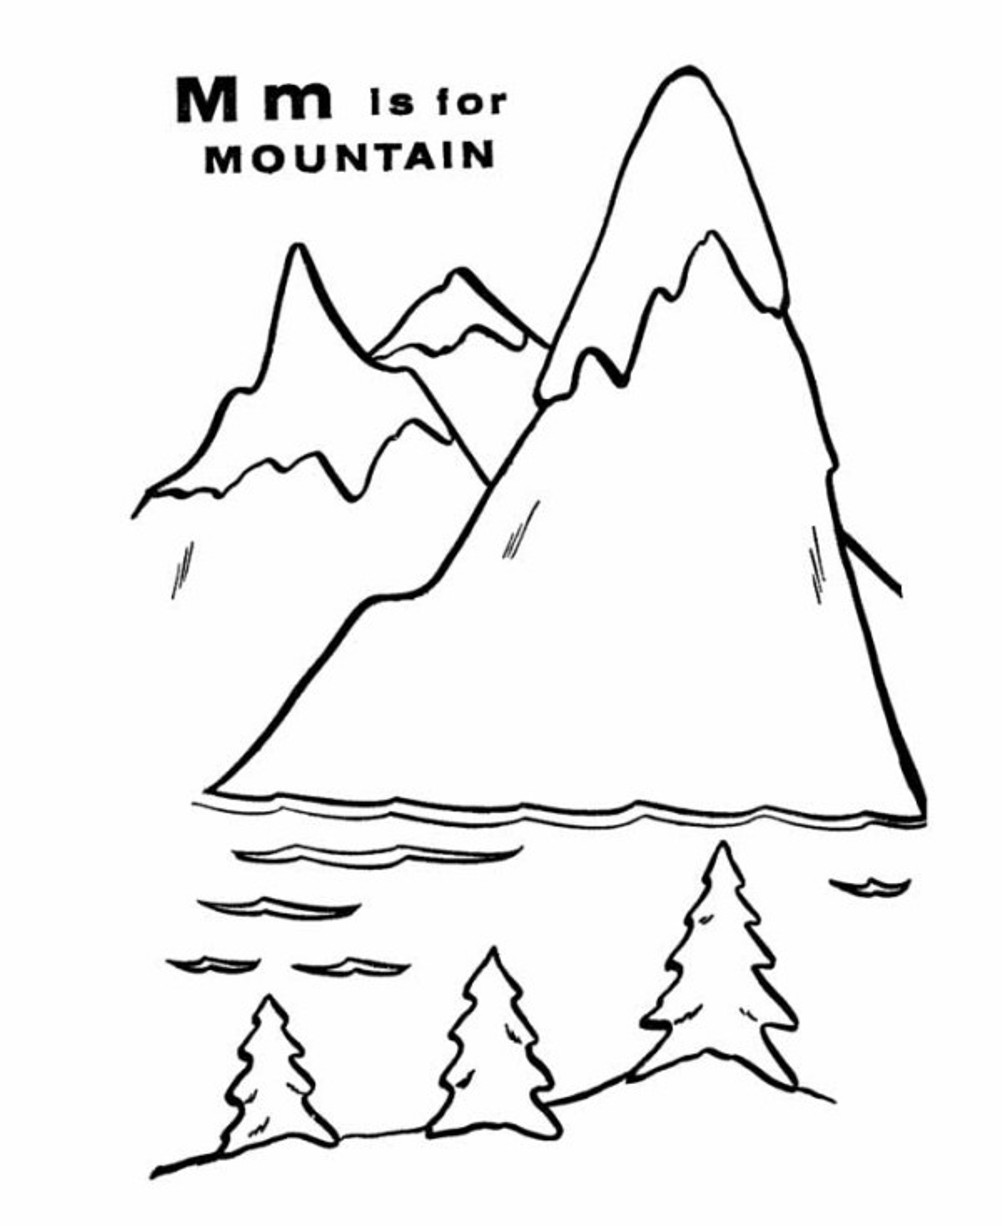 mountain pictures to color mountains coloring pages best coloring pages for kids mountain color to pictures 1 1